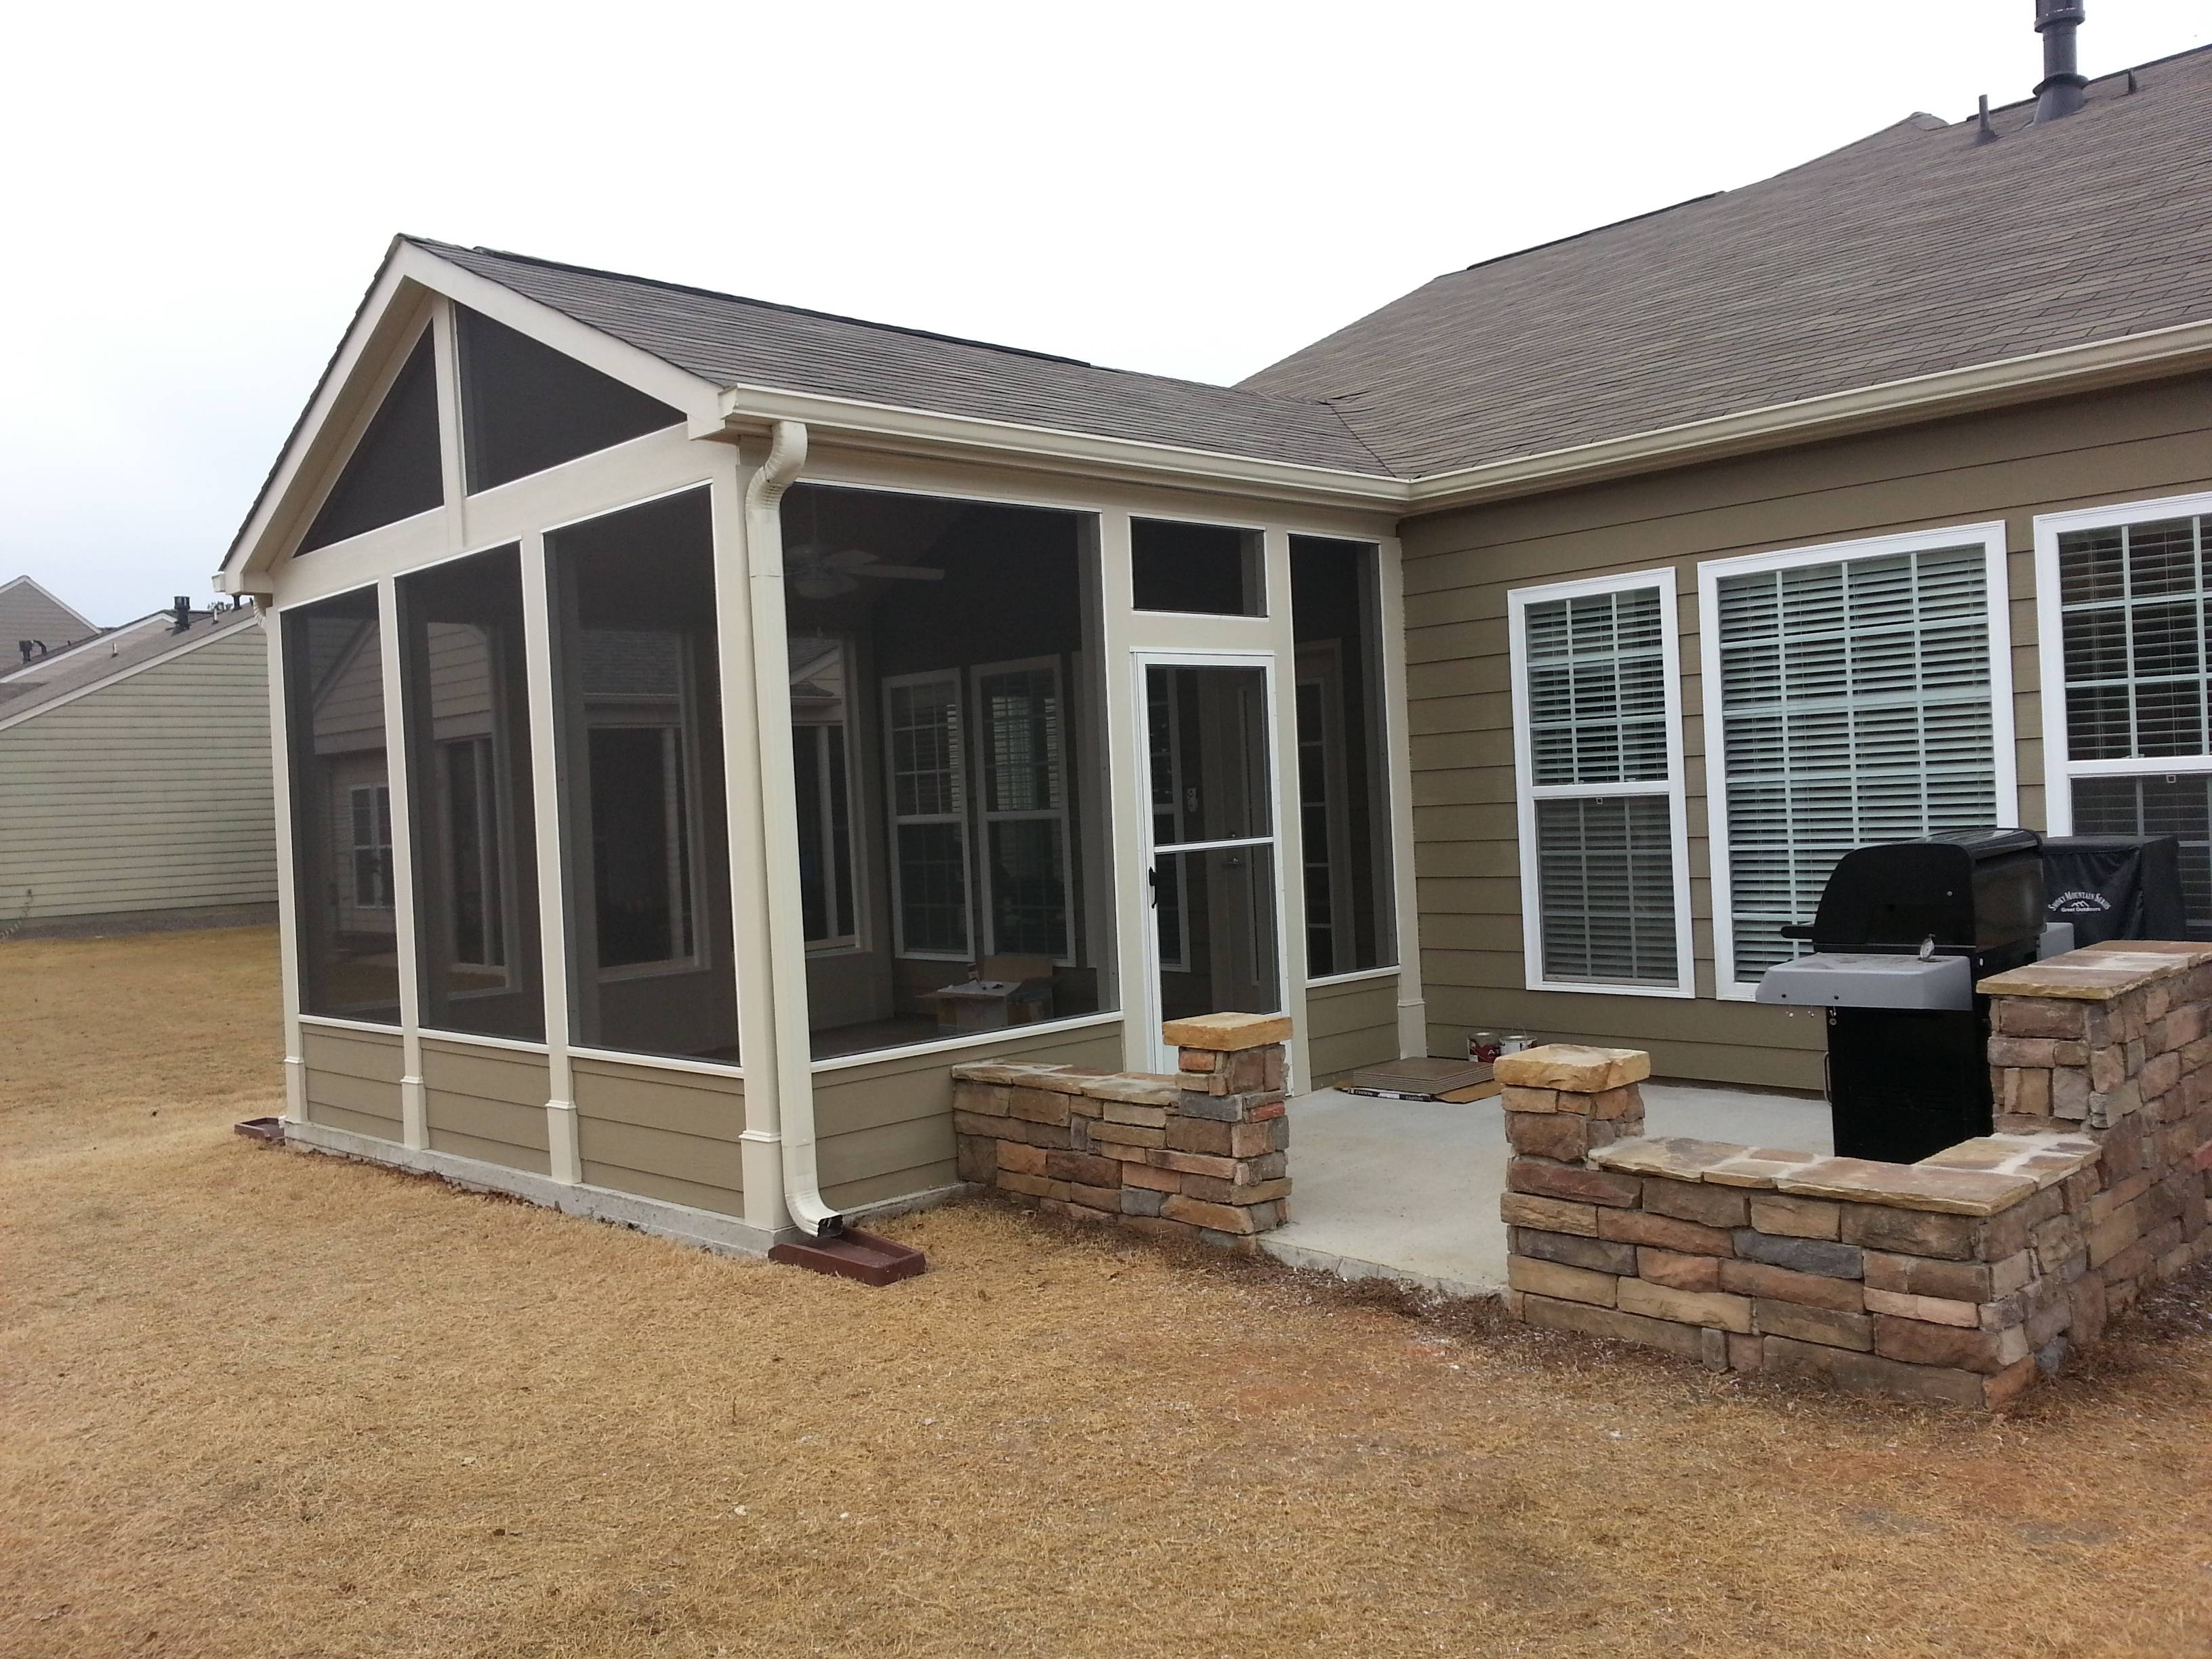 Garrett Gable Screened Room Grill Patio Sunsational Sunrooms